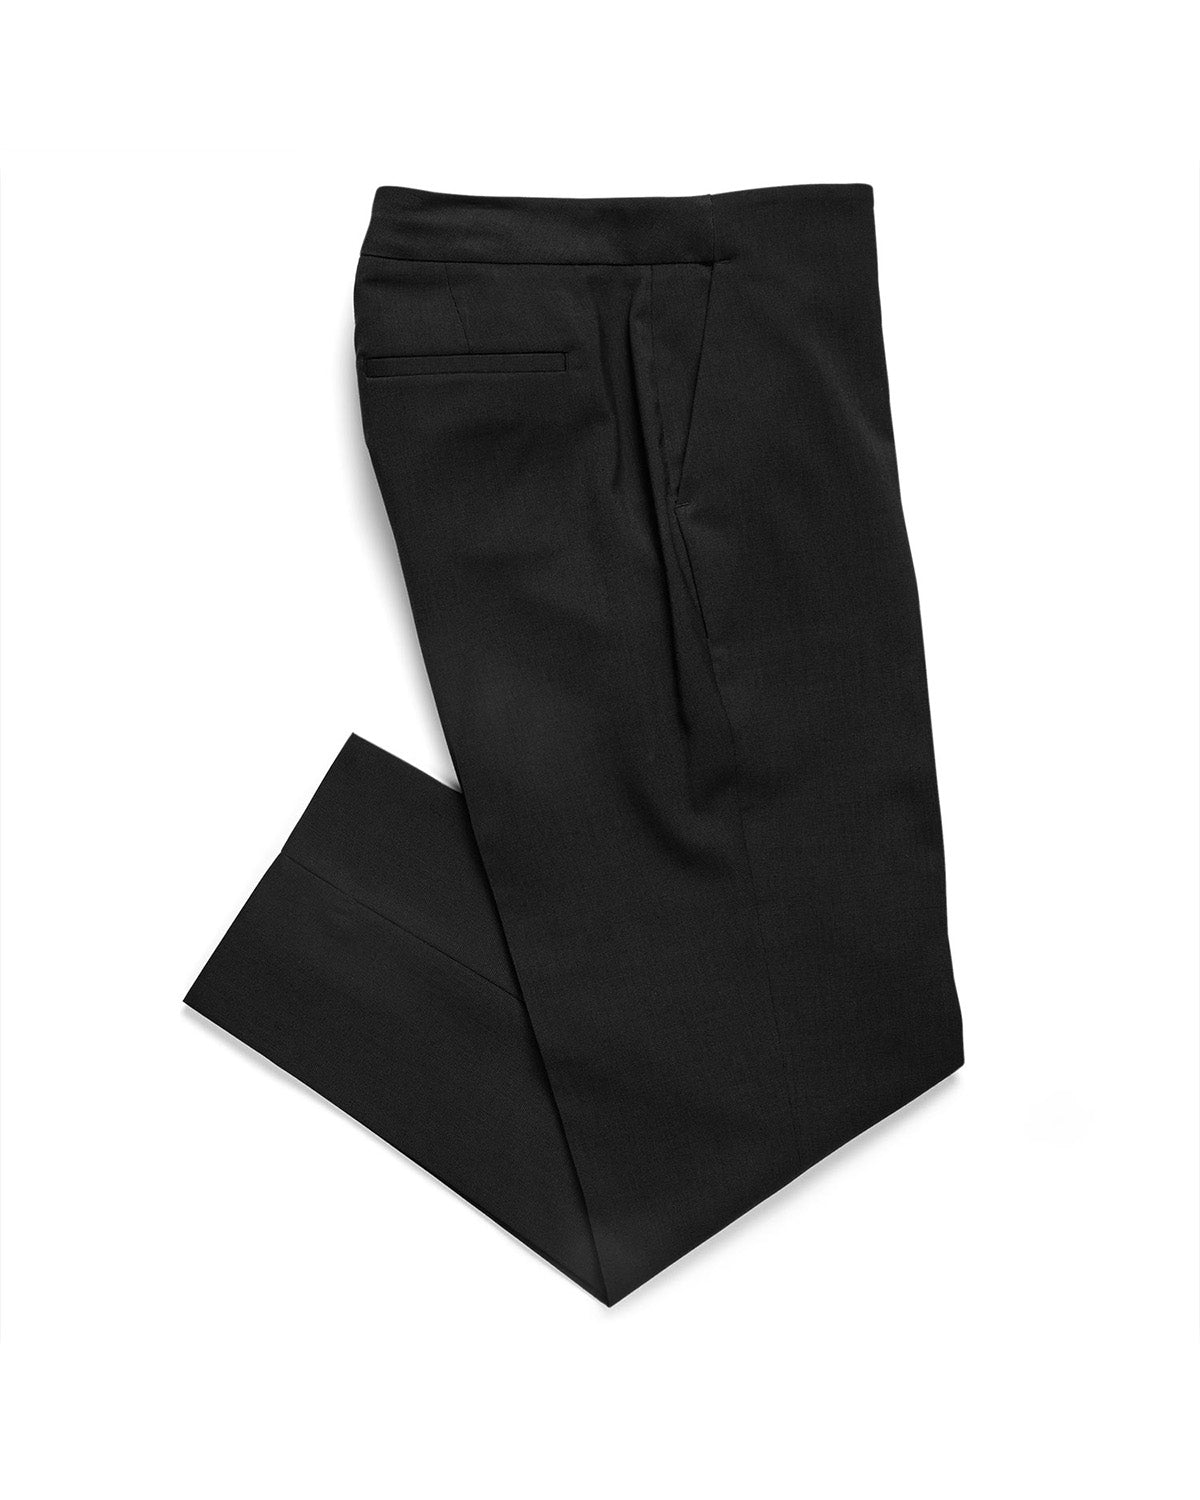 Womens-Elliot-Washable-Cigarette-Pant-1723wt-career-by-gloweave